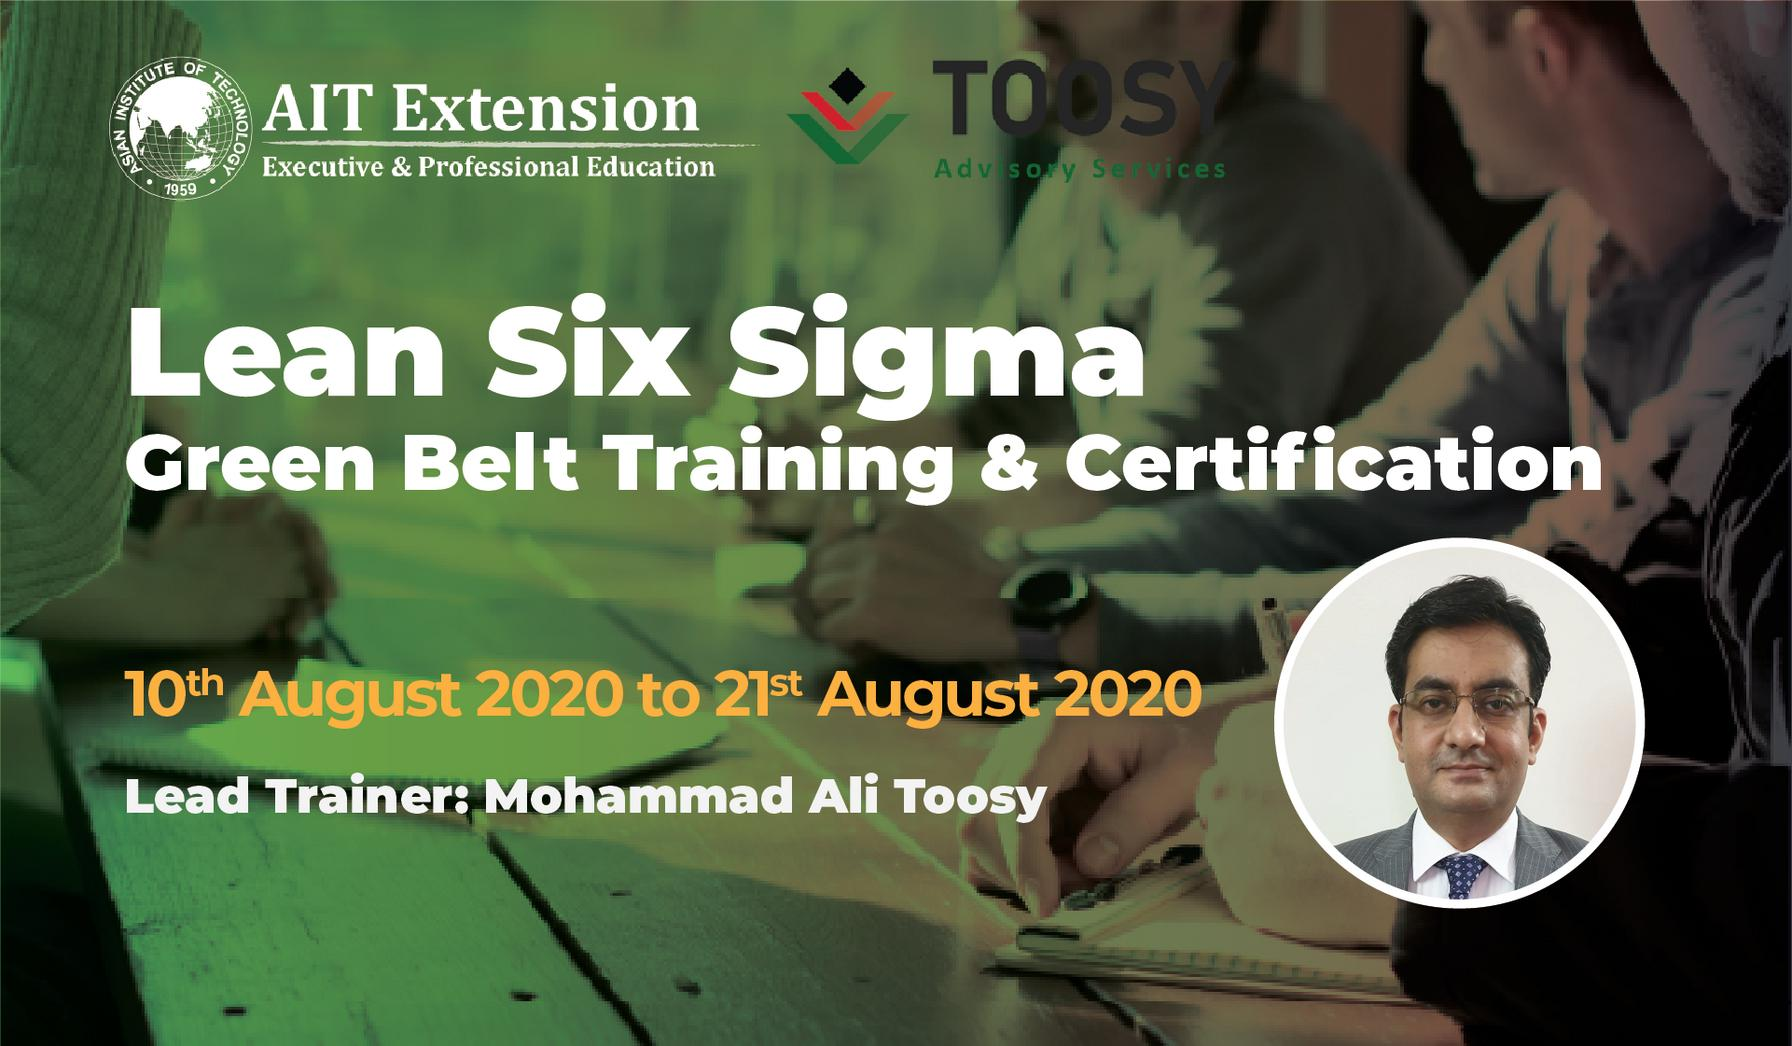 1-Lean Six Sigma Green Belt_Banner_10 Aug - 21 Aug 2020